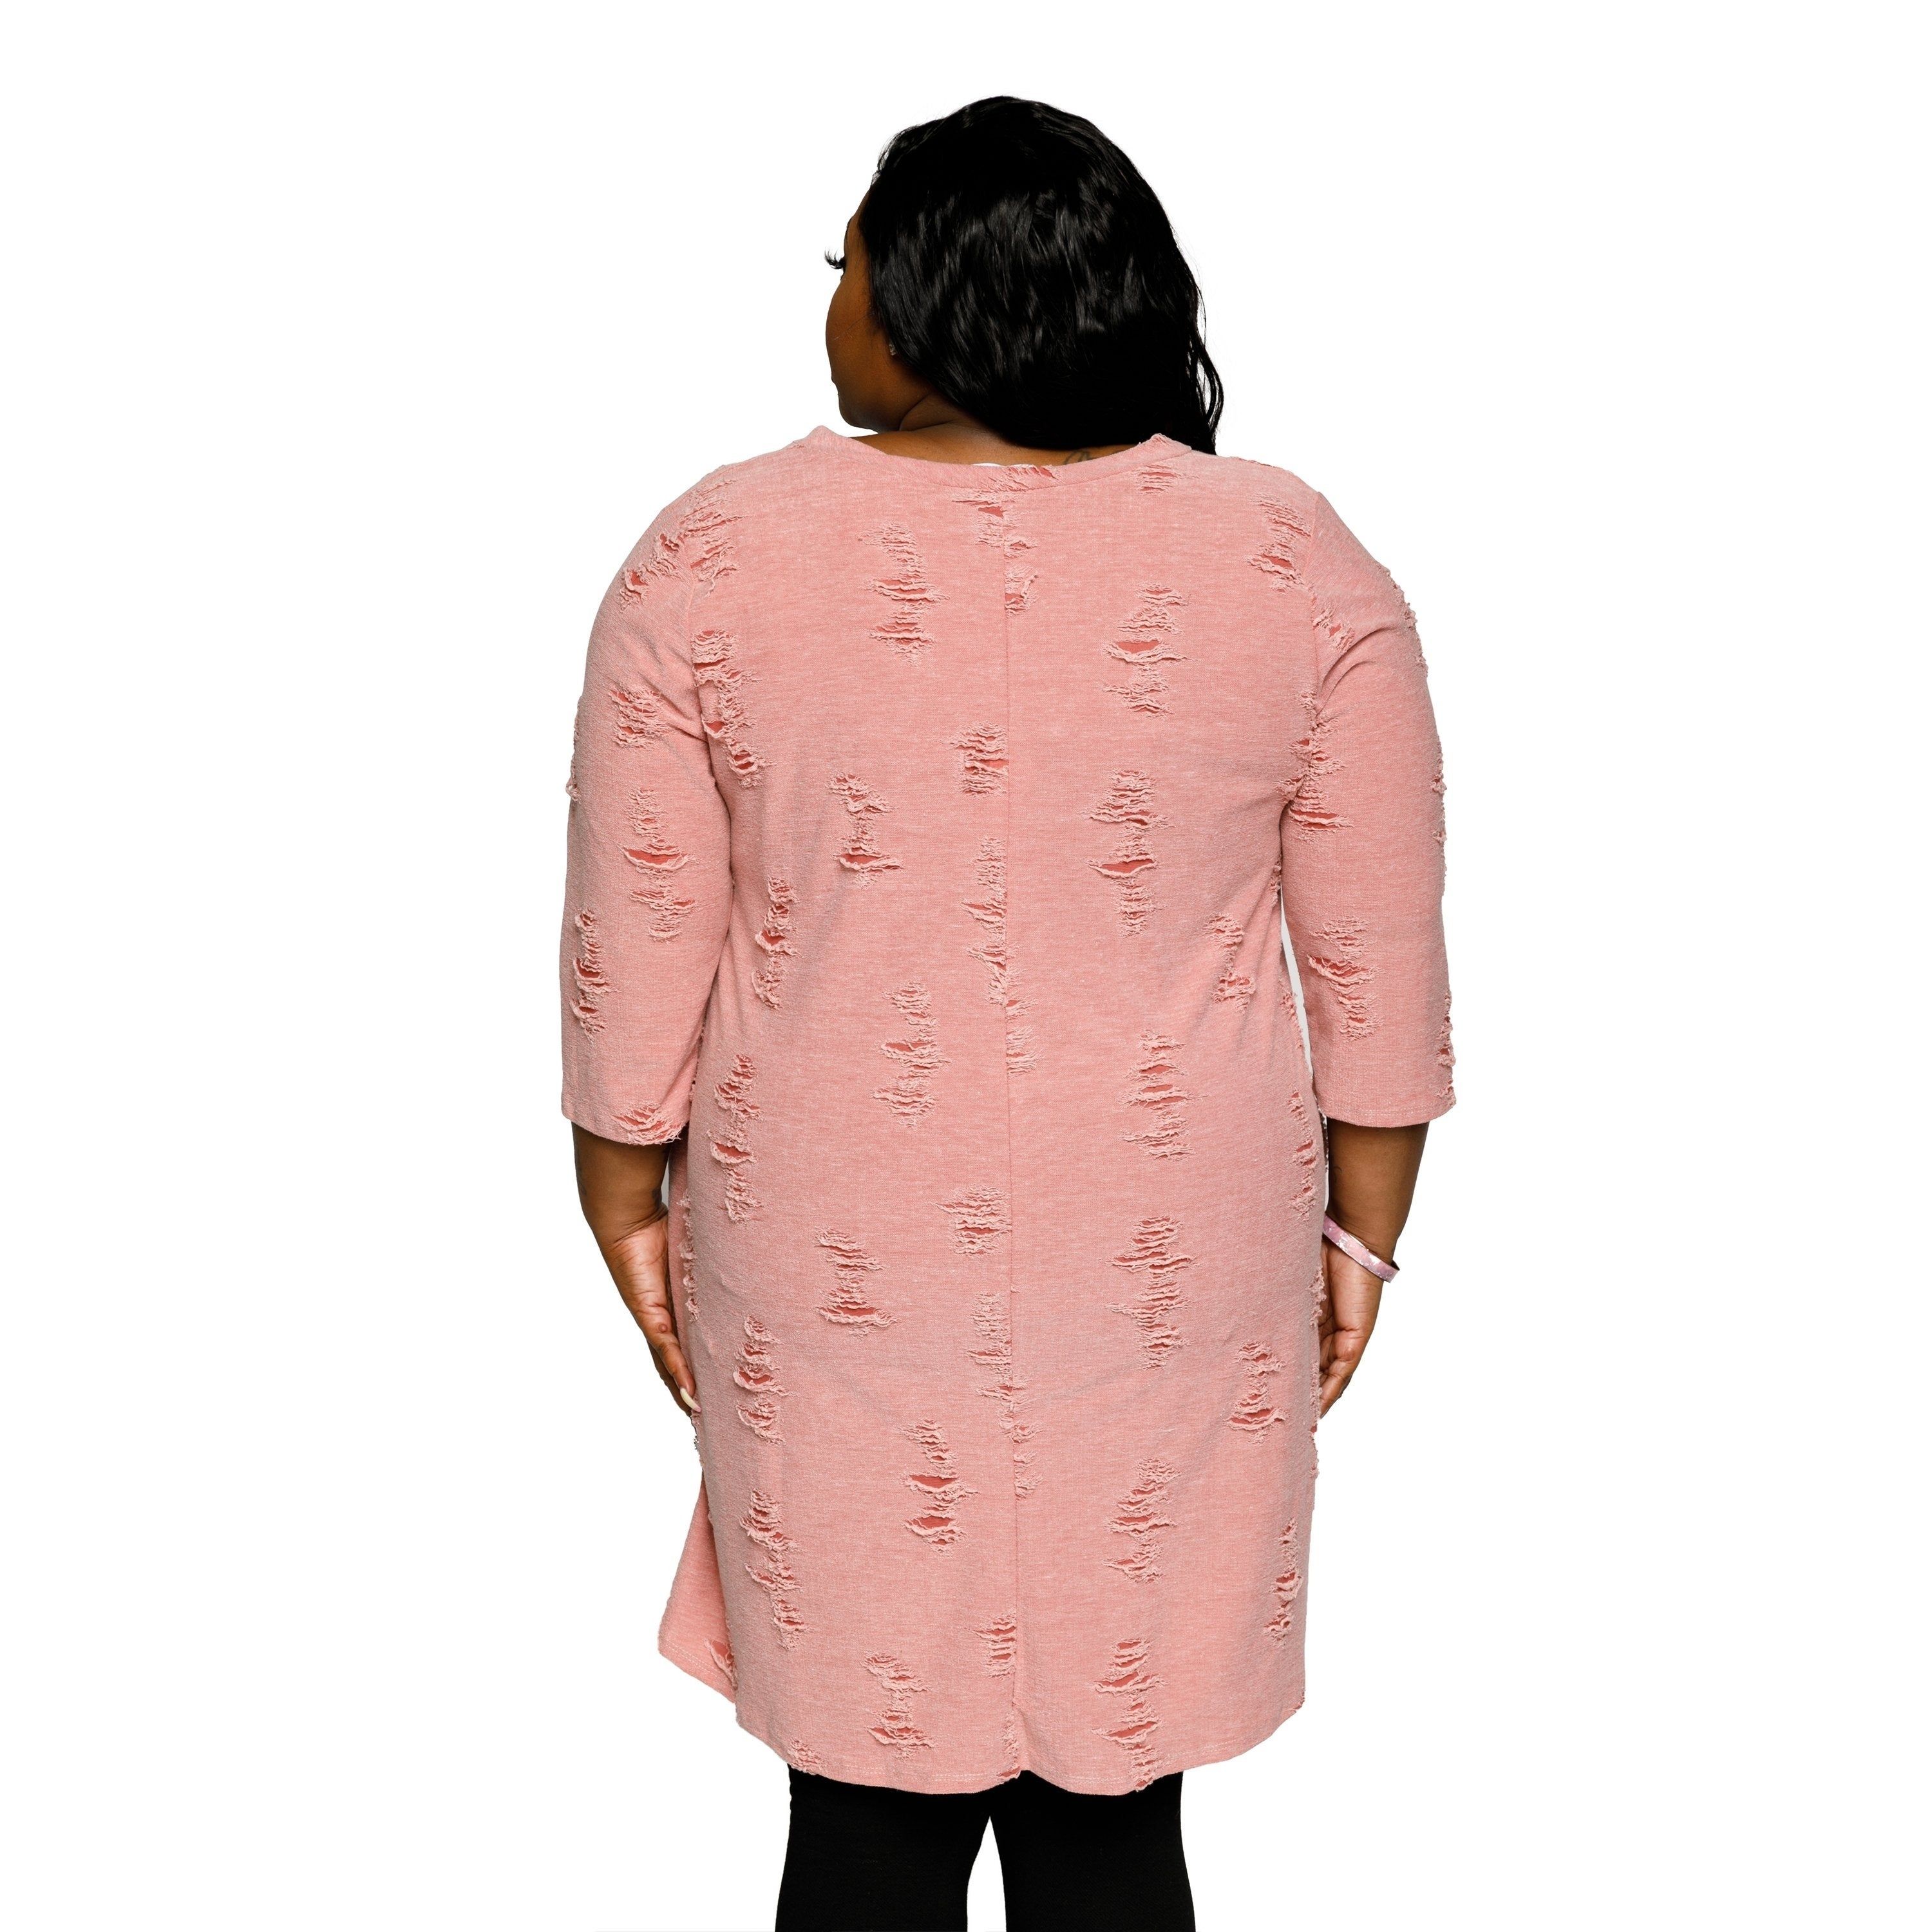 c48356a5 Shop Xehar Womens Plus Size Distressed Crisscross V-Neck Sweater Dress - Free  Shipping On Orders Over $45 - Overstock - 18820681